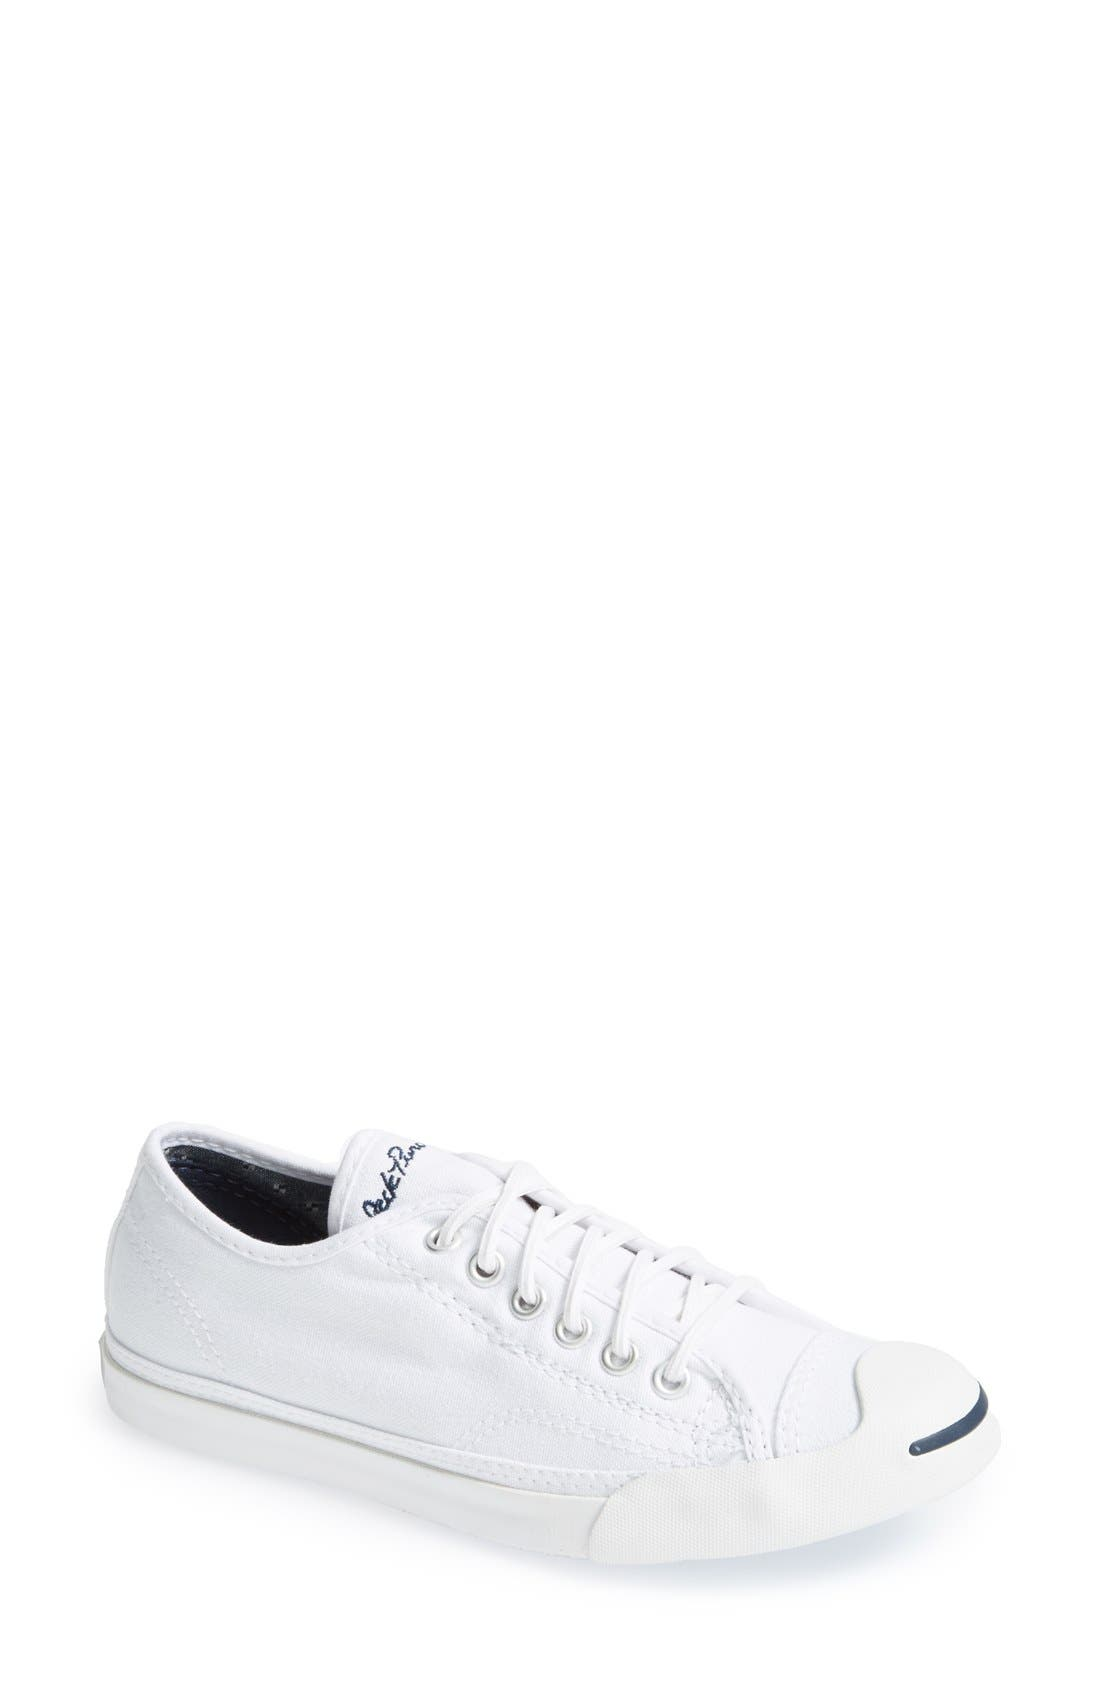 CONVERSE, Jack Purcell Low Top Sneaker, Alternate thumbnail 5, color, OPTIC WHITE